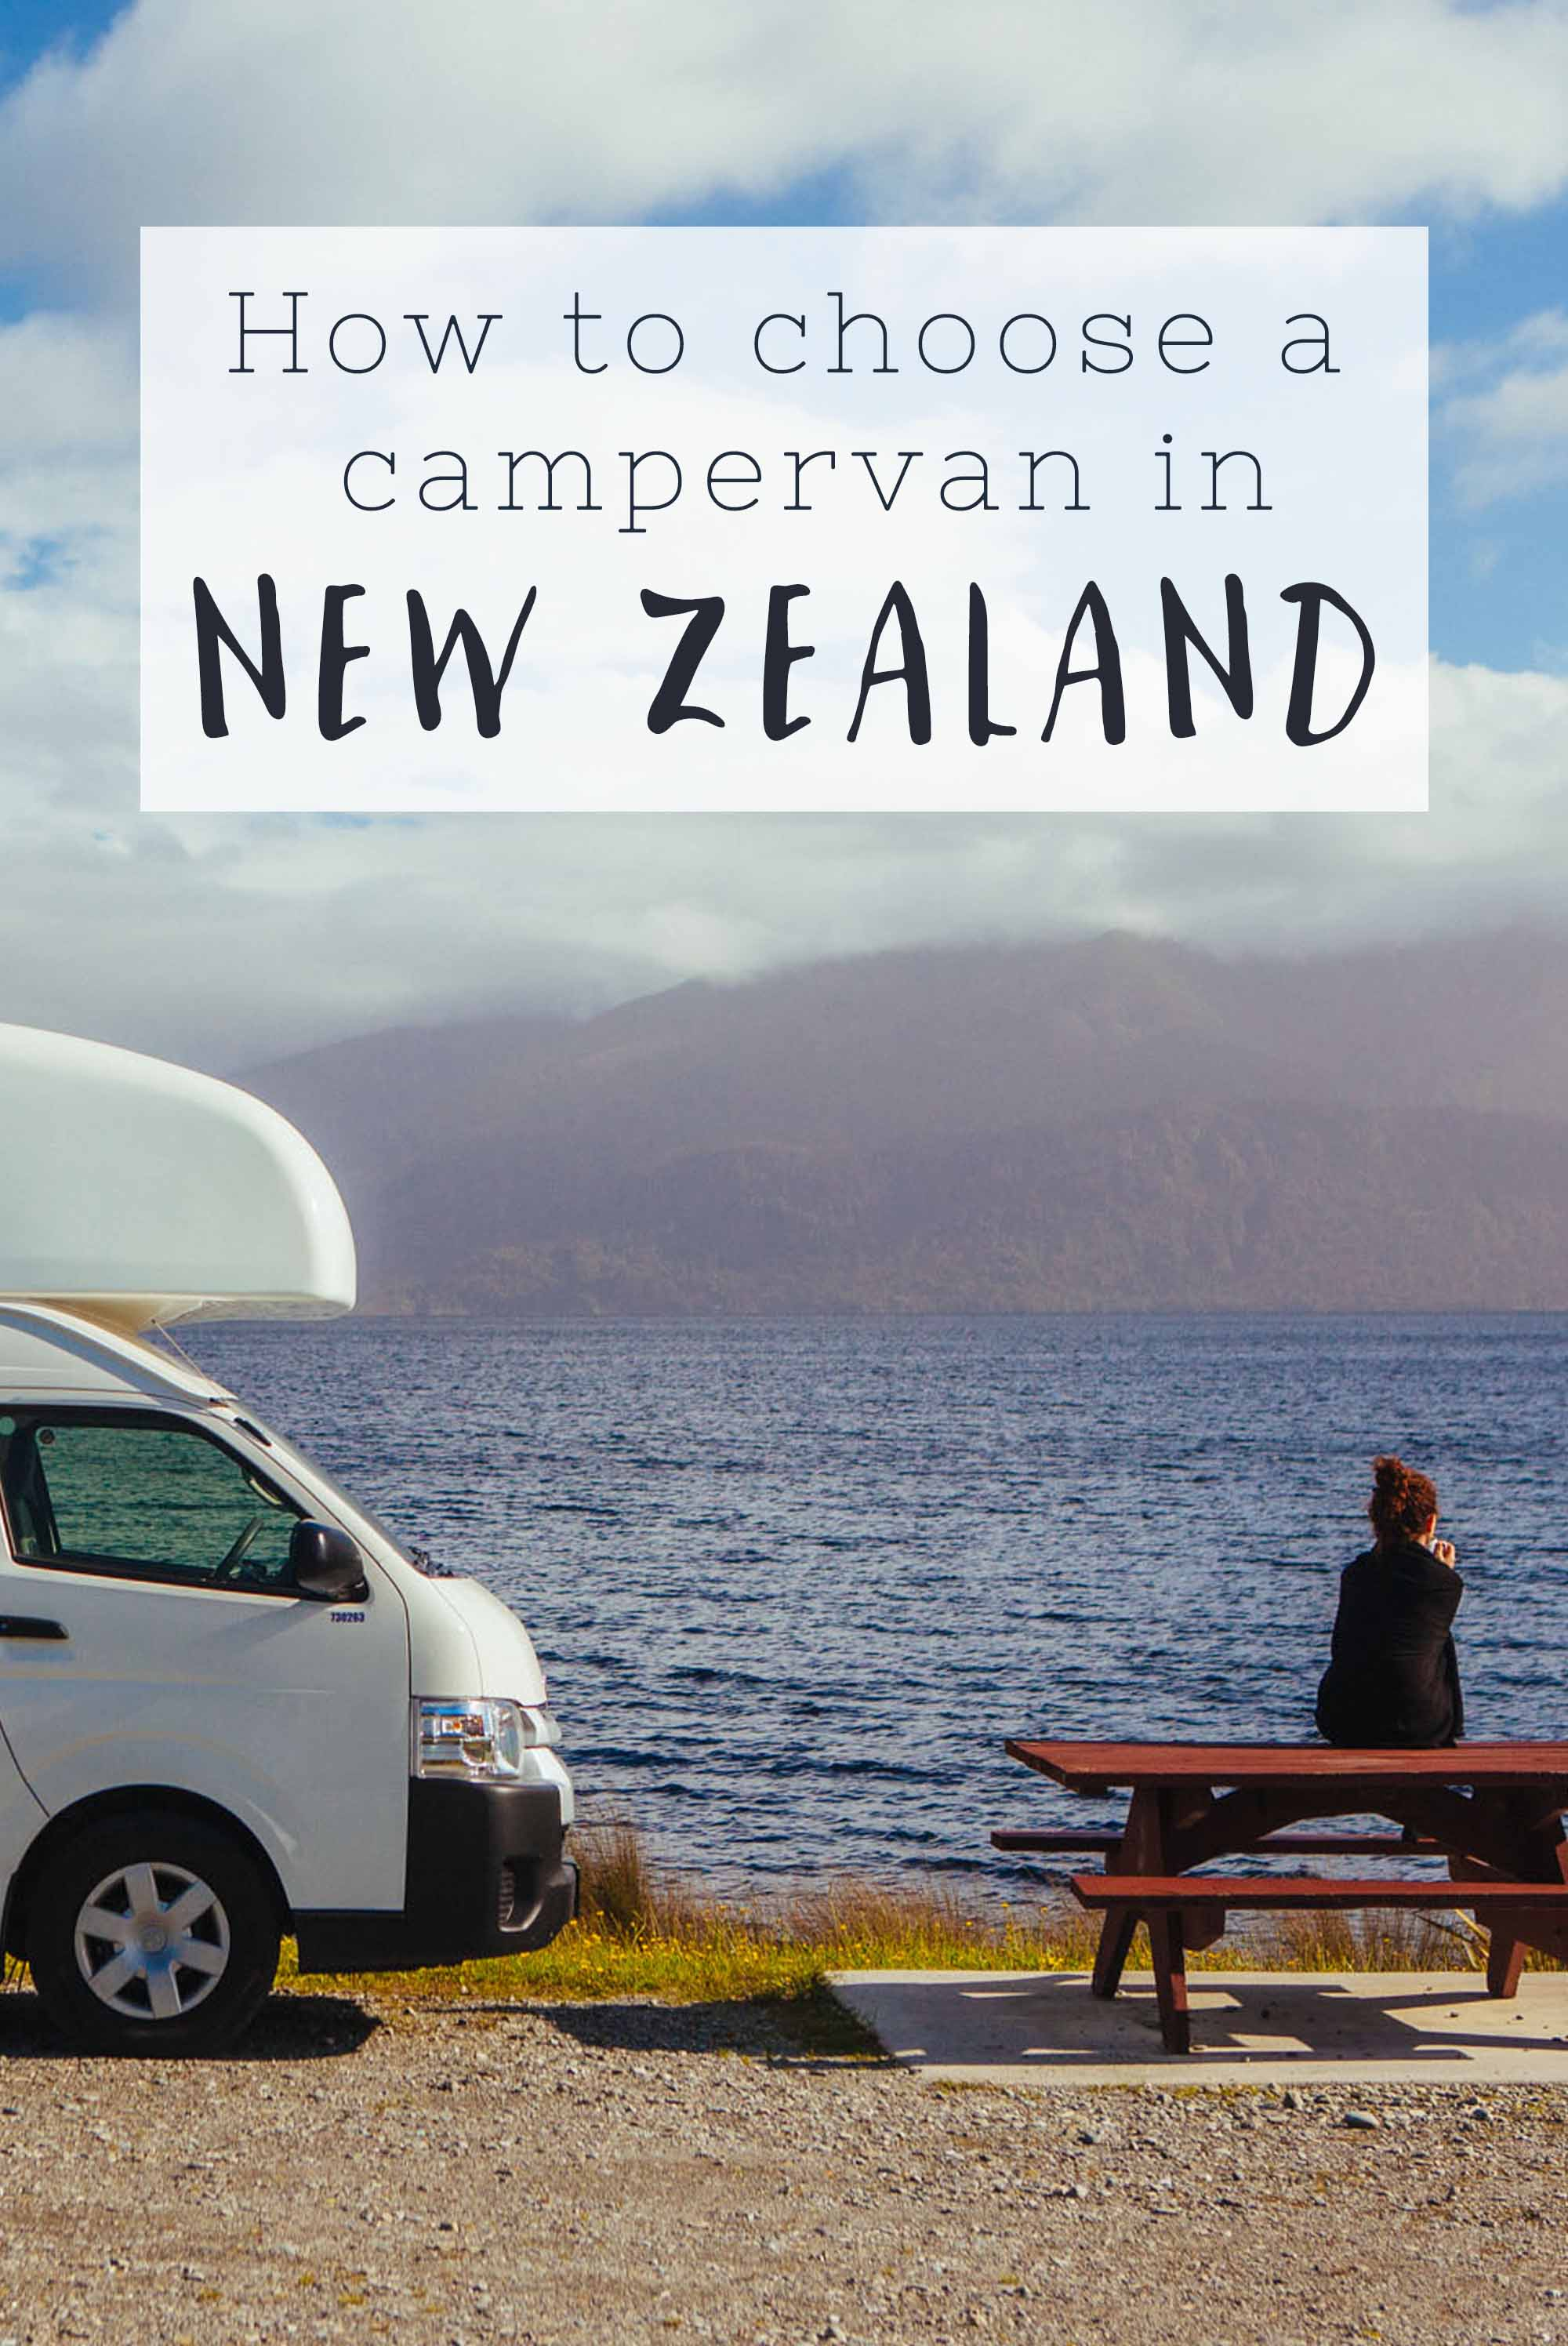 Campervan New Zealand: What You Need to Know